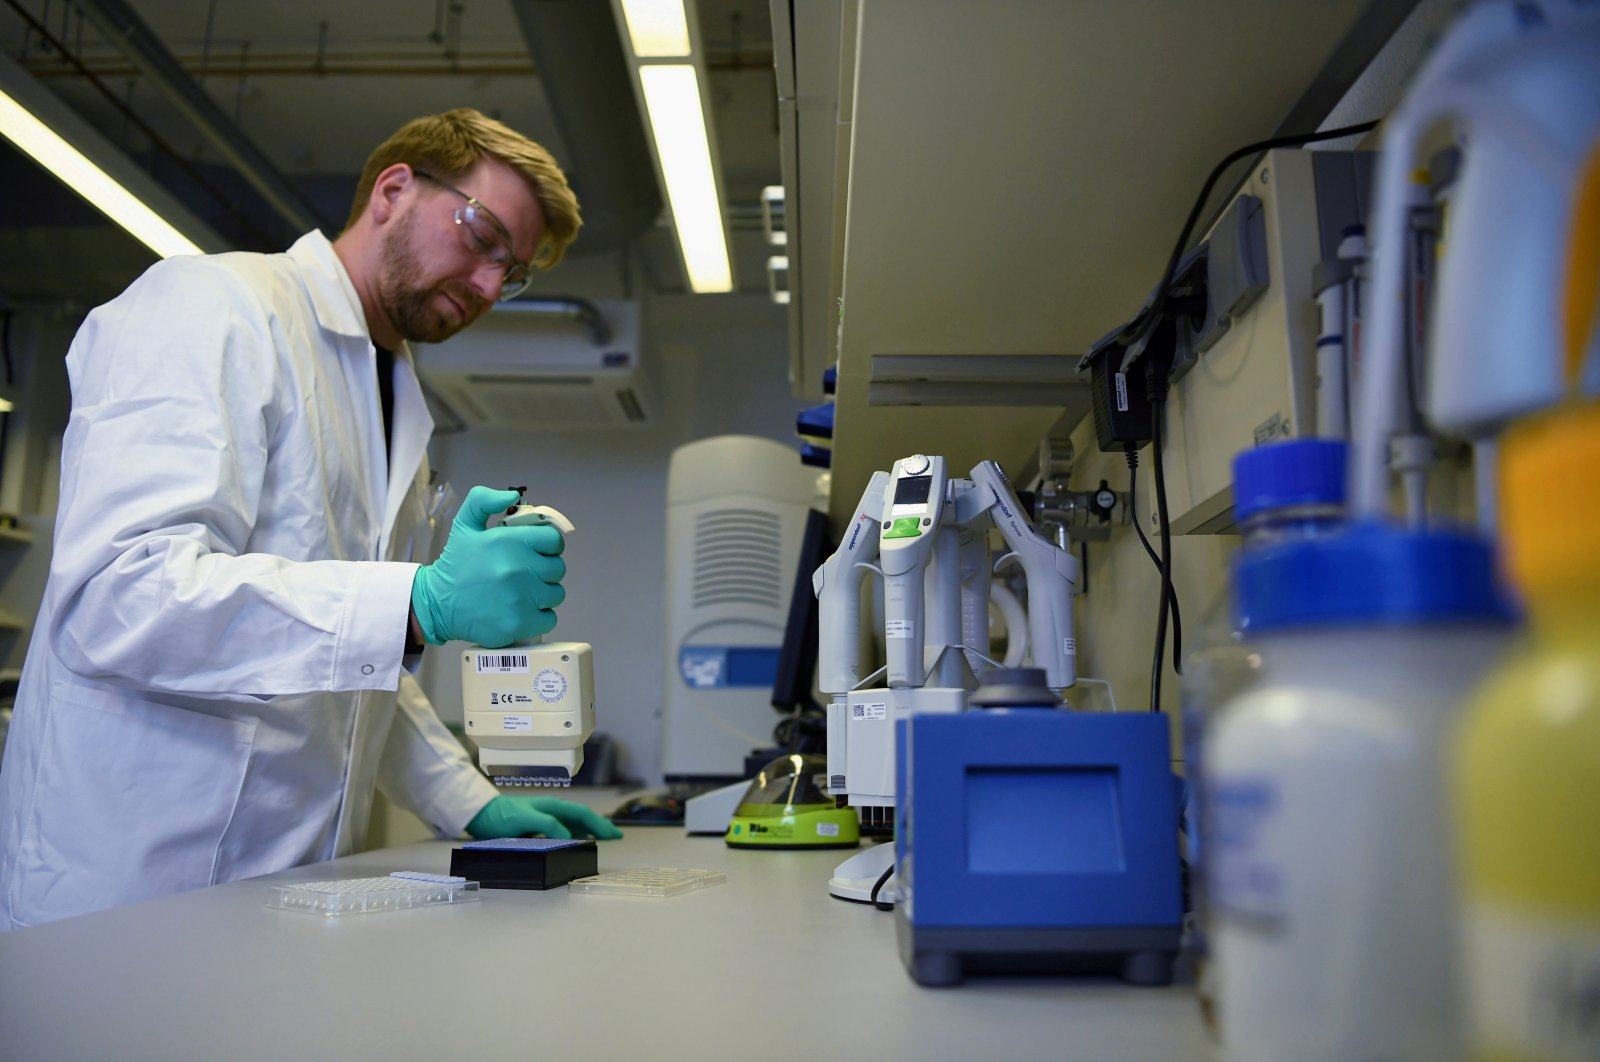 An employee of German biopharmaceutical company CureVac, demonstrates research workflow on a vaccine for the coronavirus (COVID-19) disease at a laboratory in Tuebingen, Germany, March 12, 2020. (Reuters Photo)